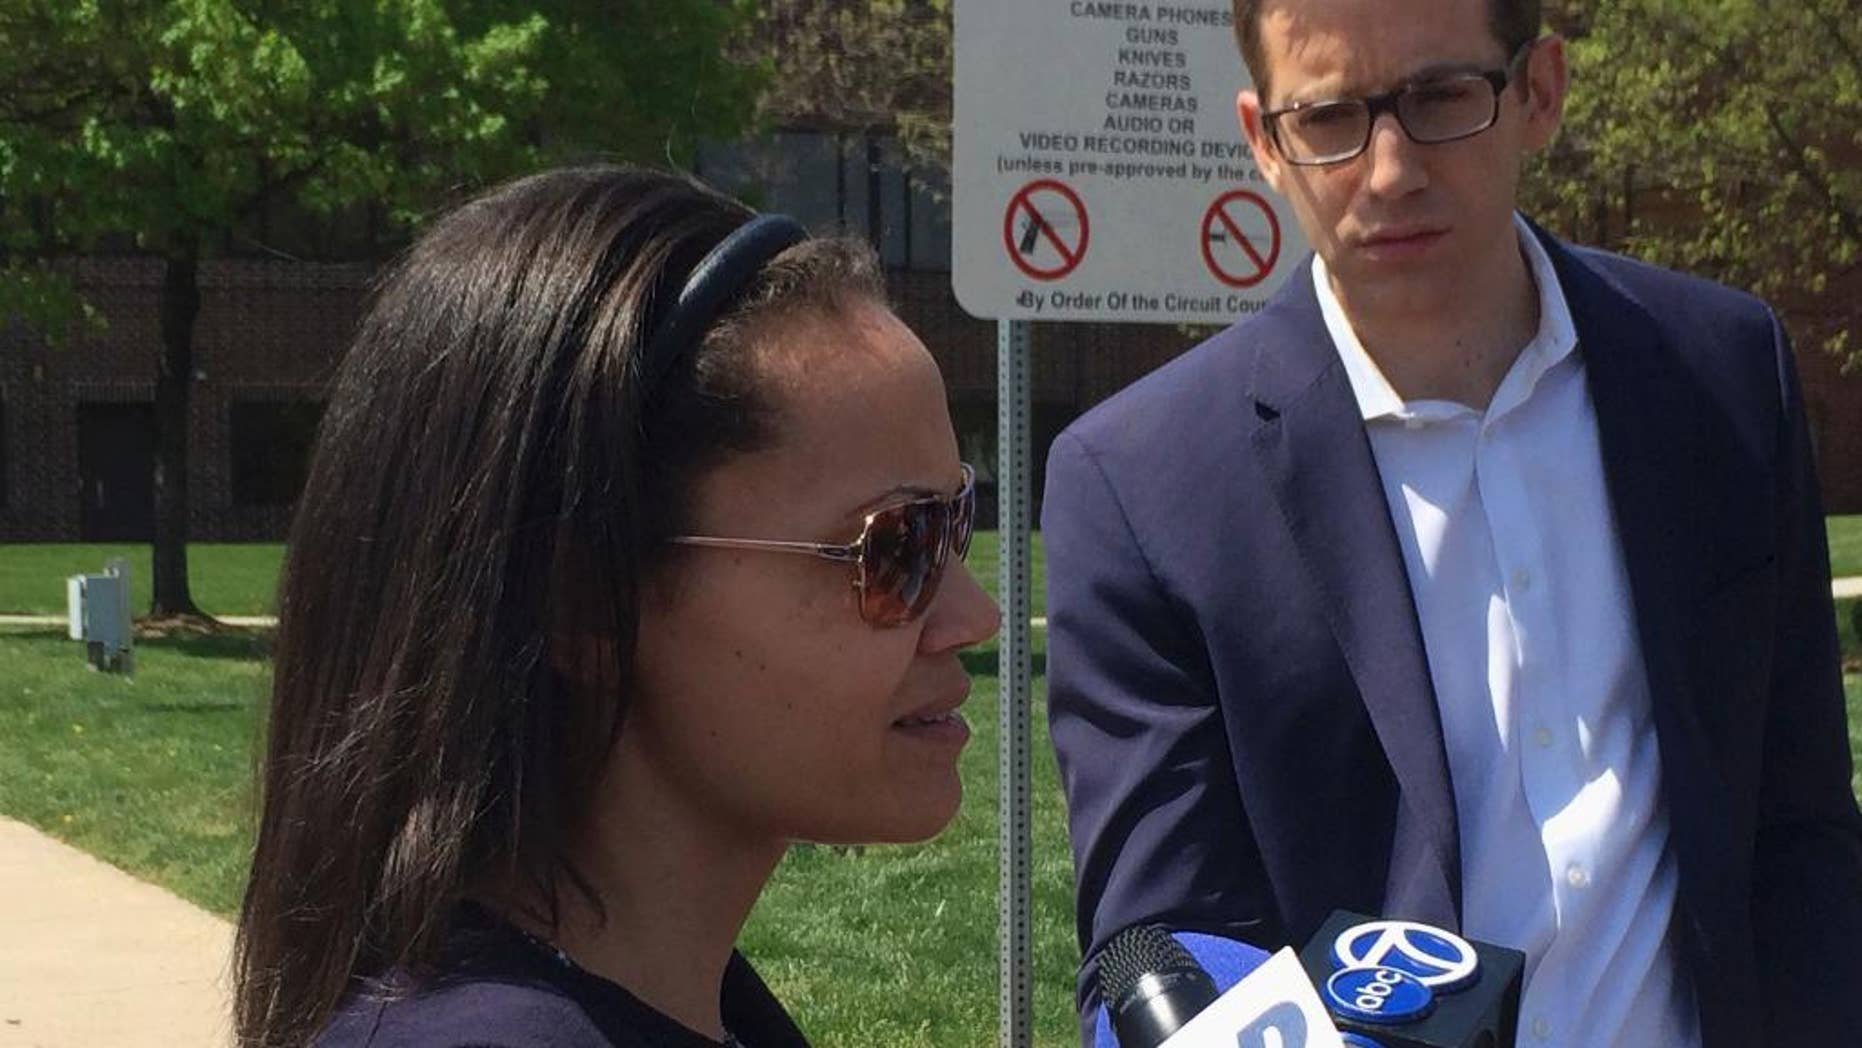 Hera McLeod talks to reporters in Manassas, Va., Thursday, April 13, 2017,  after her ex-fiancé, Joaquin Shadow Rams, was convicted of murdering their 1-year-old son. A judge has convicted a Virginia father of murdering his 1-year-old son in an effort to collect on more than $500,000 in life insurance he had taken out on the boy. (AP Photo/Matthew Barakat)